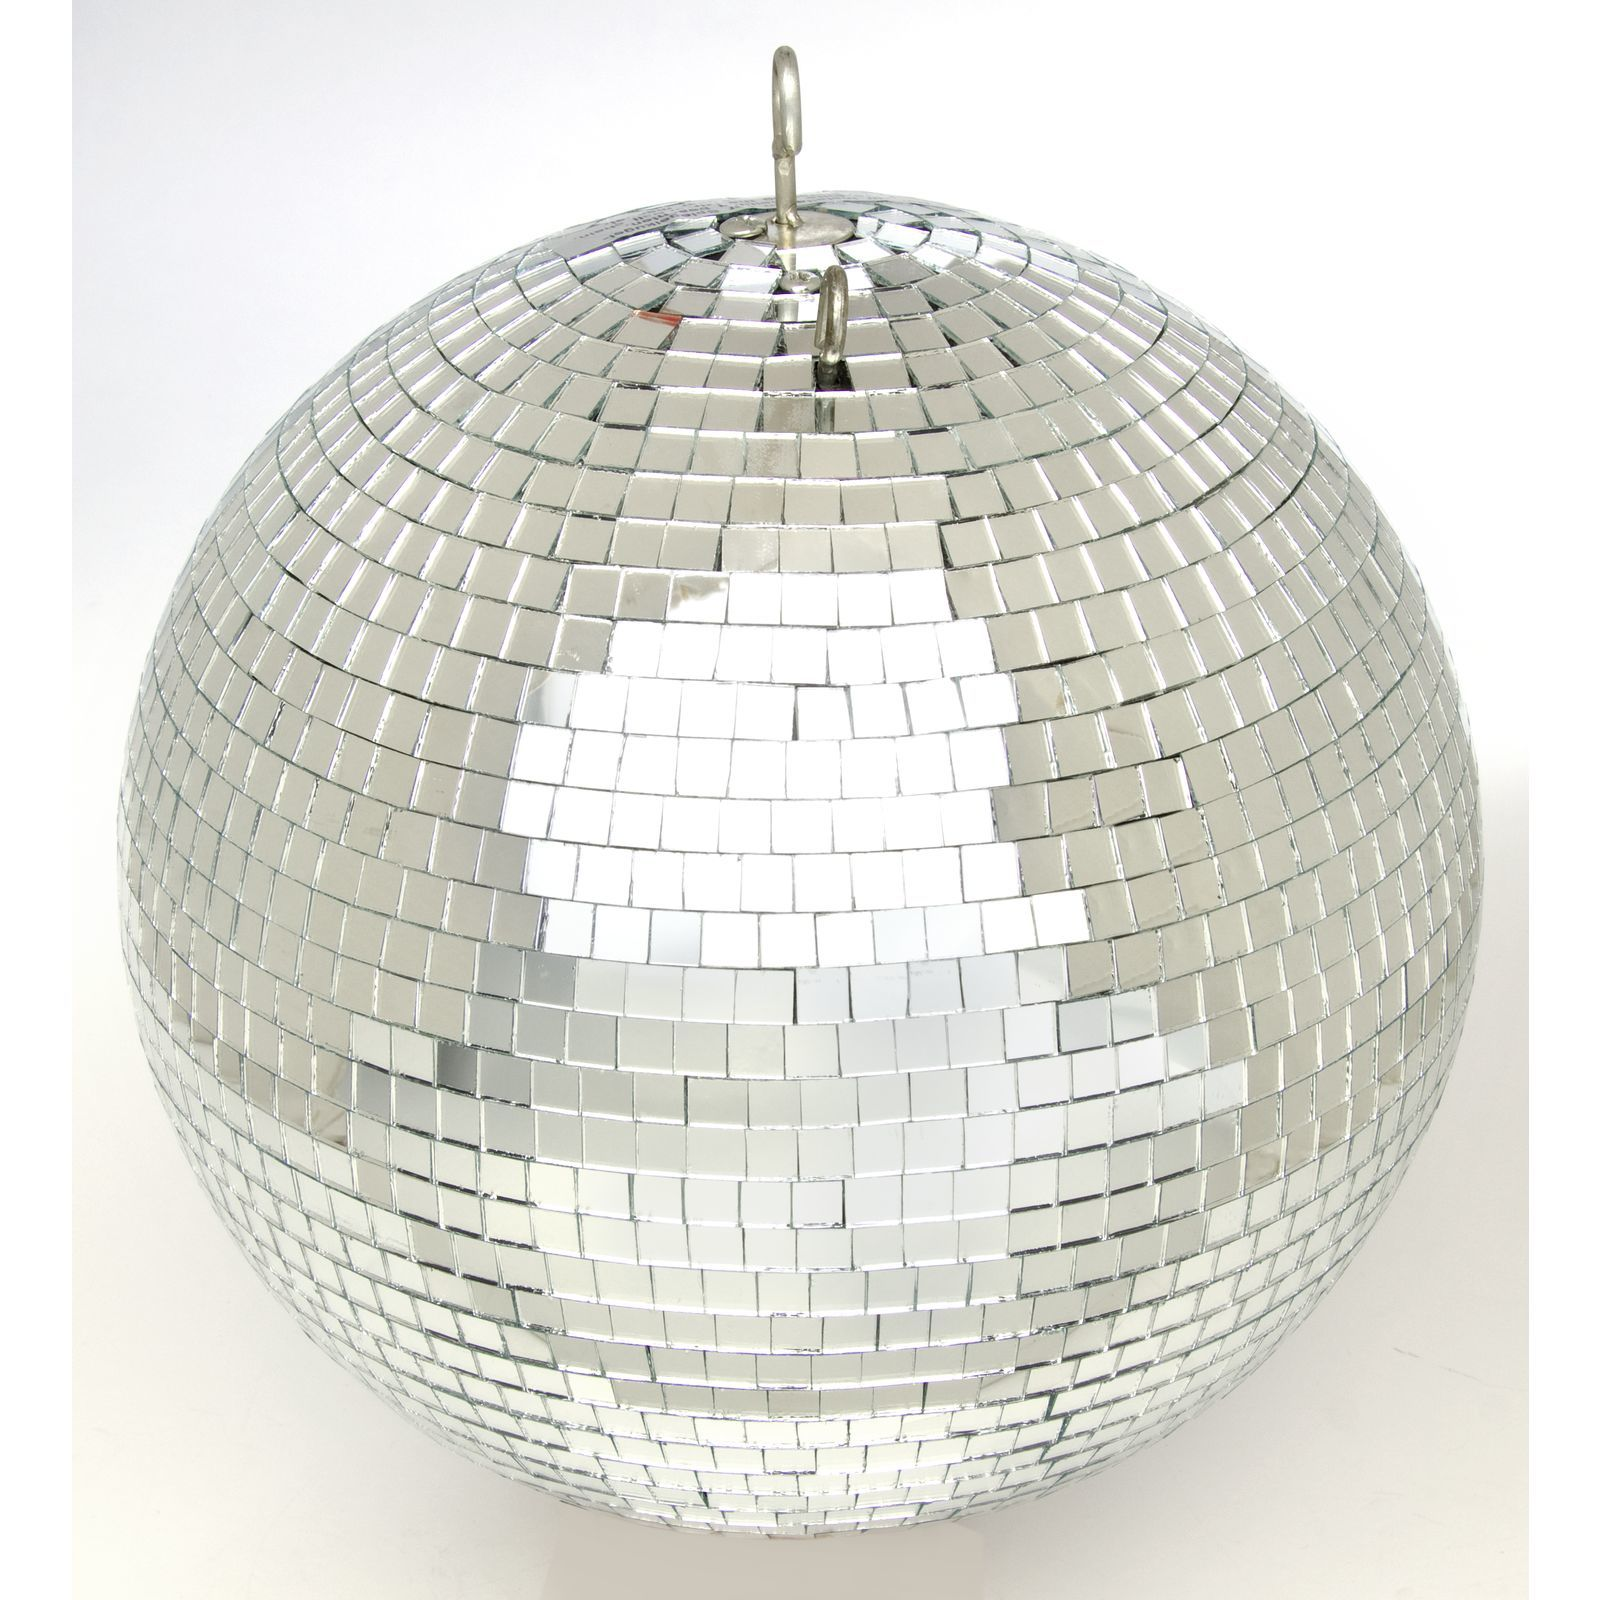 lightmaXX Mirror Ball 30cm with safety eyelet Produktbillede